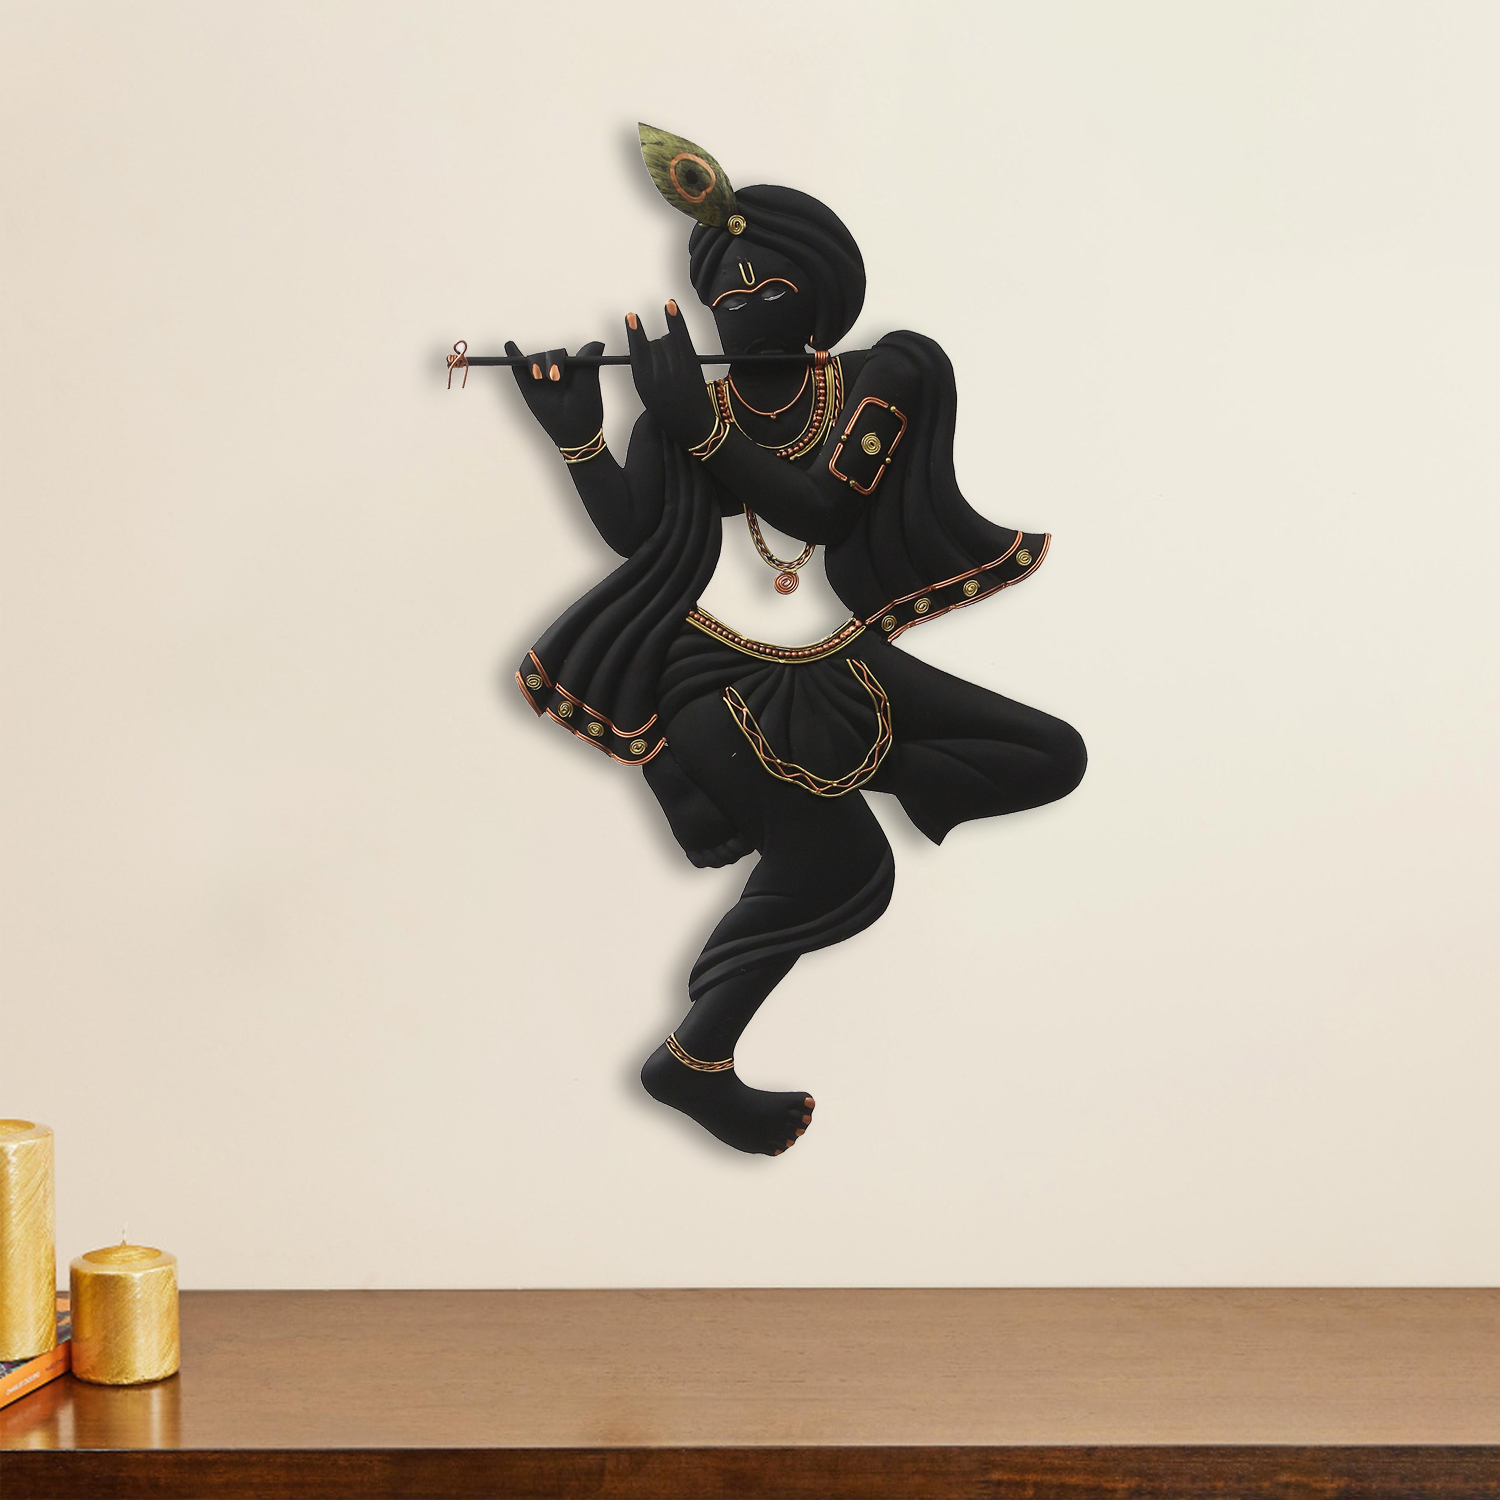 Black Lord Krishna Playing Flute Handcrafted Decorative Iron Wall Hanging Indian Home Decor